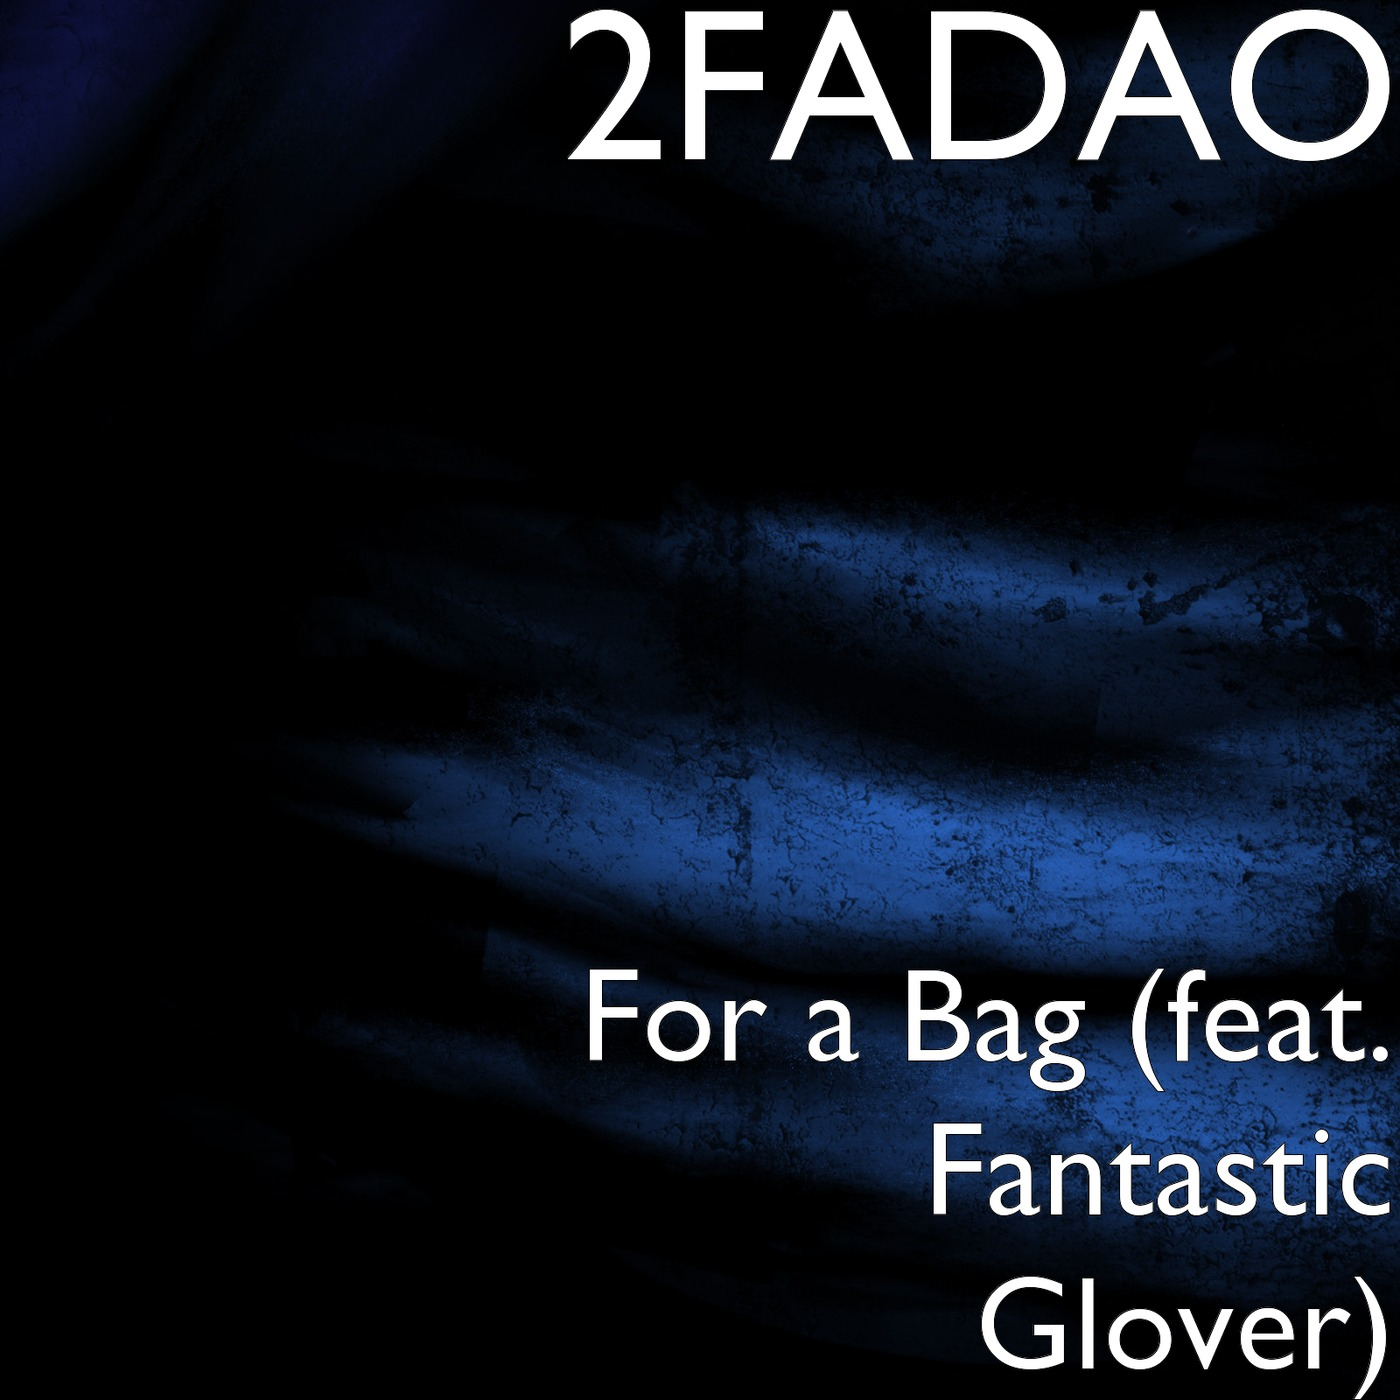 For a Bag (feat. Fantastic Glover)